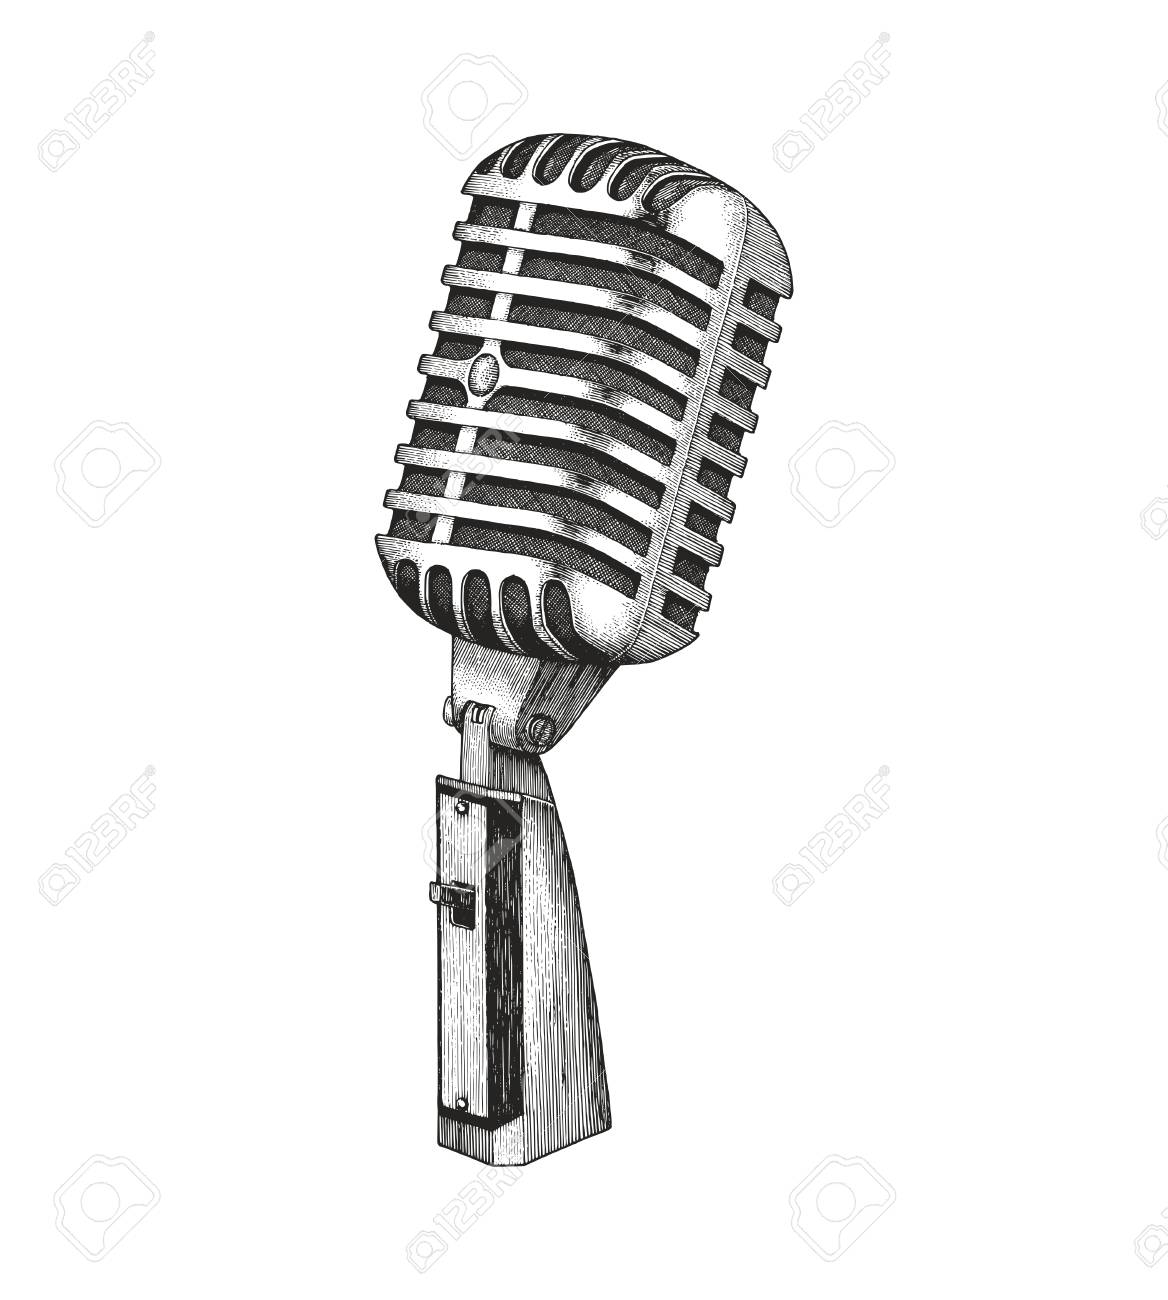 d0ef025dd Vintage Microphone Hand Drawing Royalty Free Cliparts, Vectors, And ...